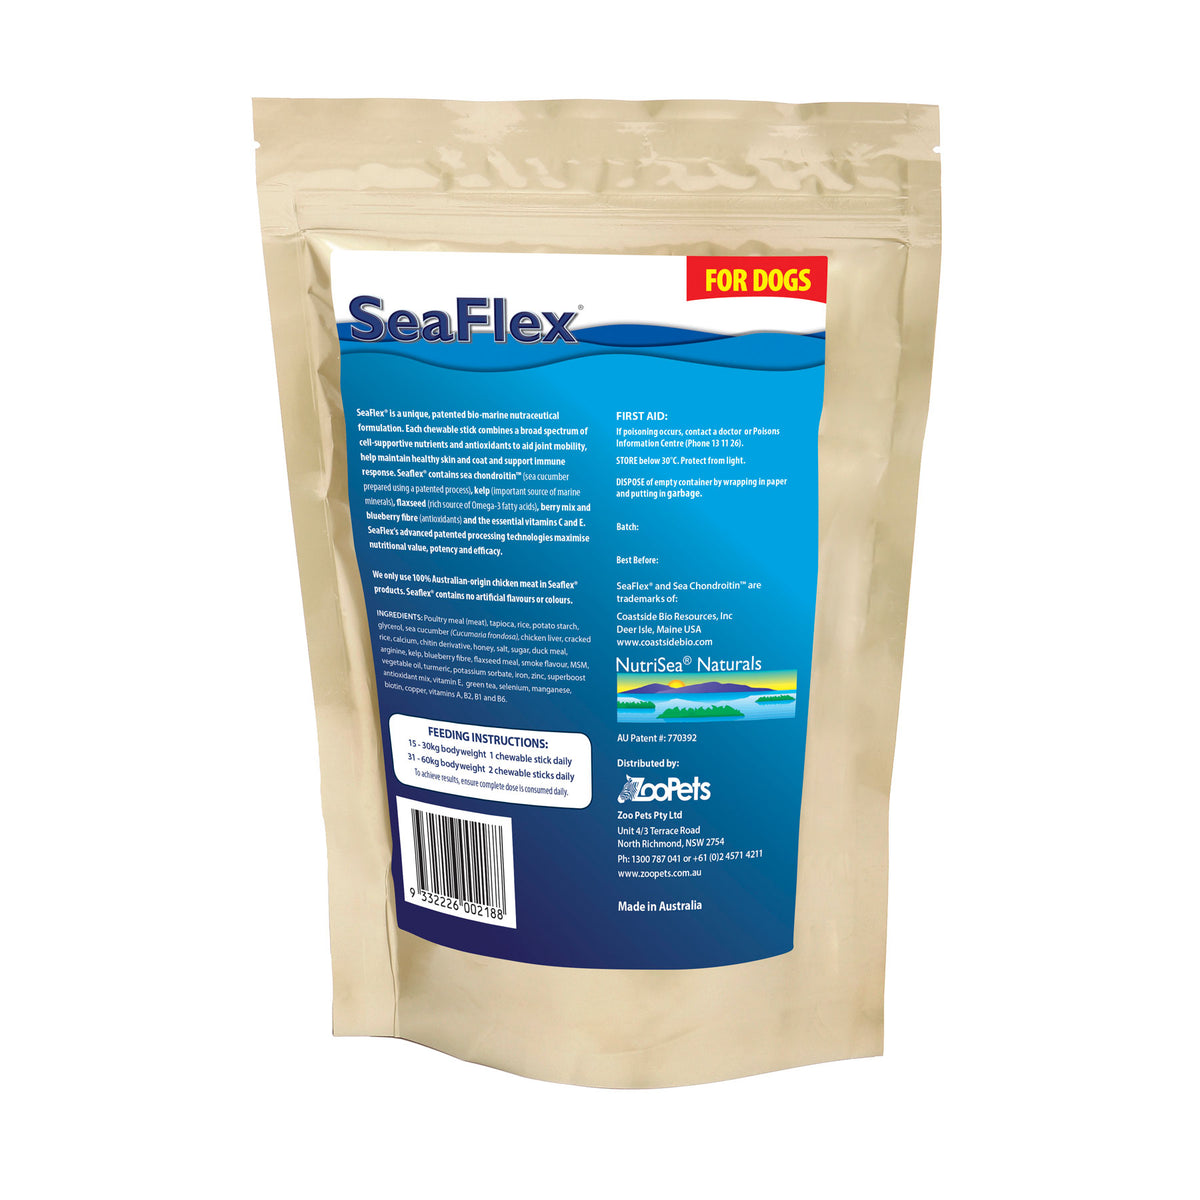 SeaFlex Joint, Skin & Vitality Health Supplement for Dogs 450g